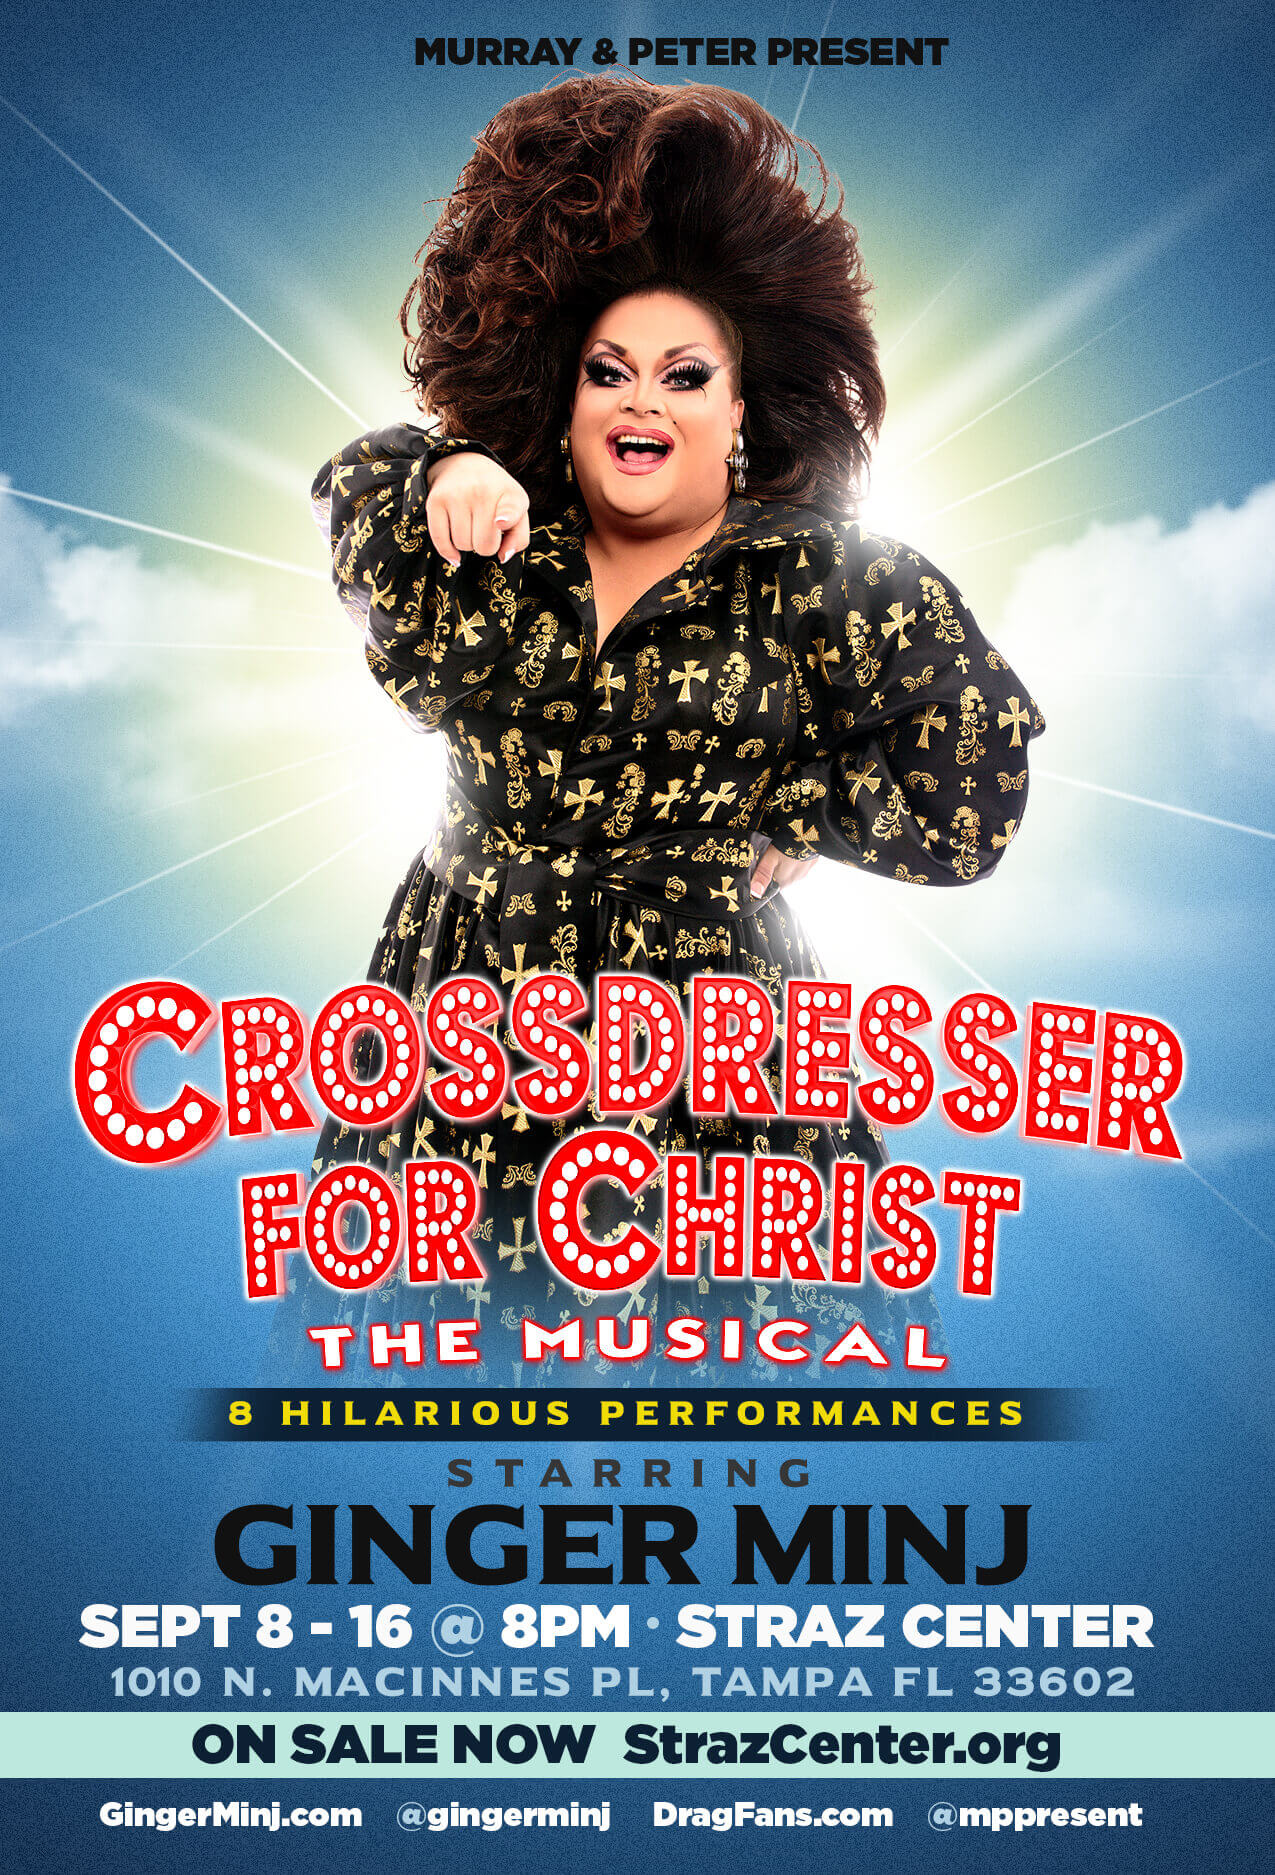 Crossdresser for Christ Ad Mat